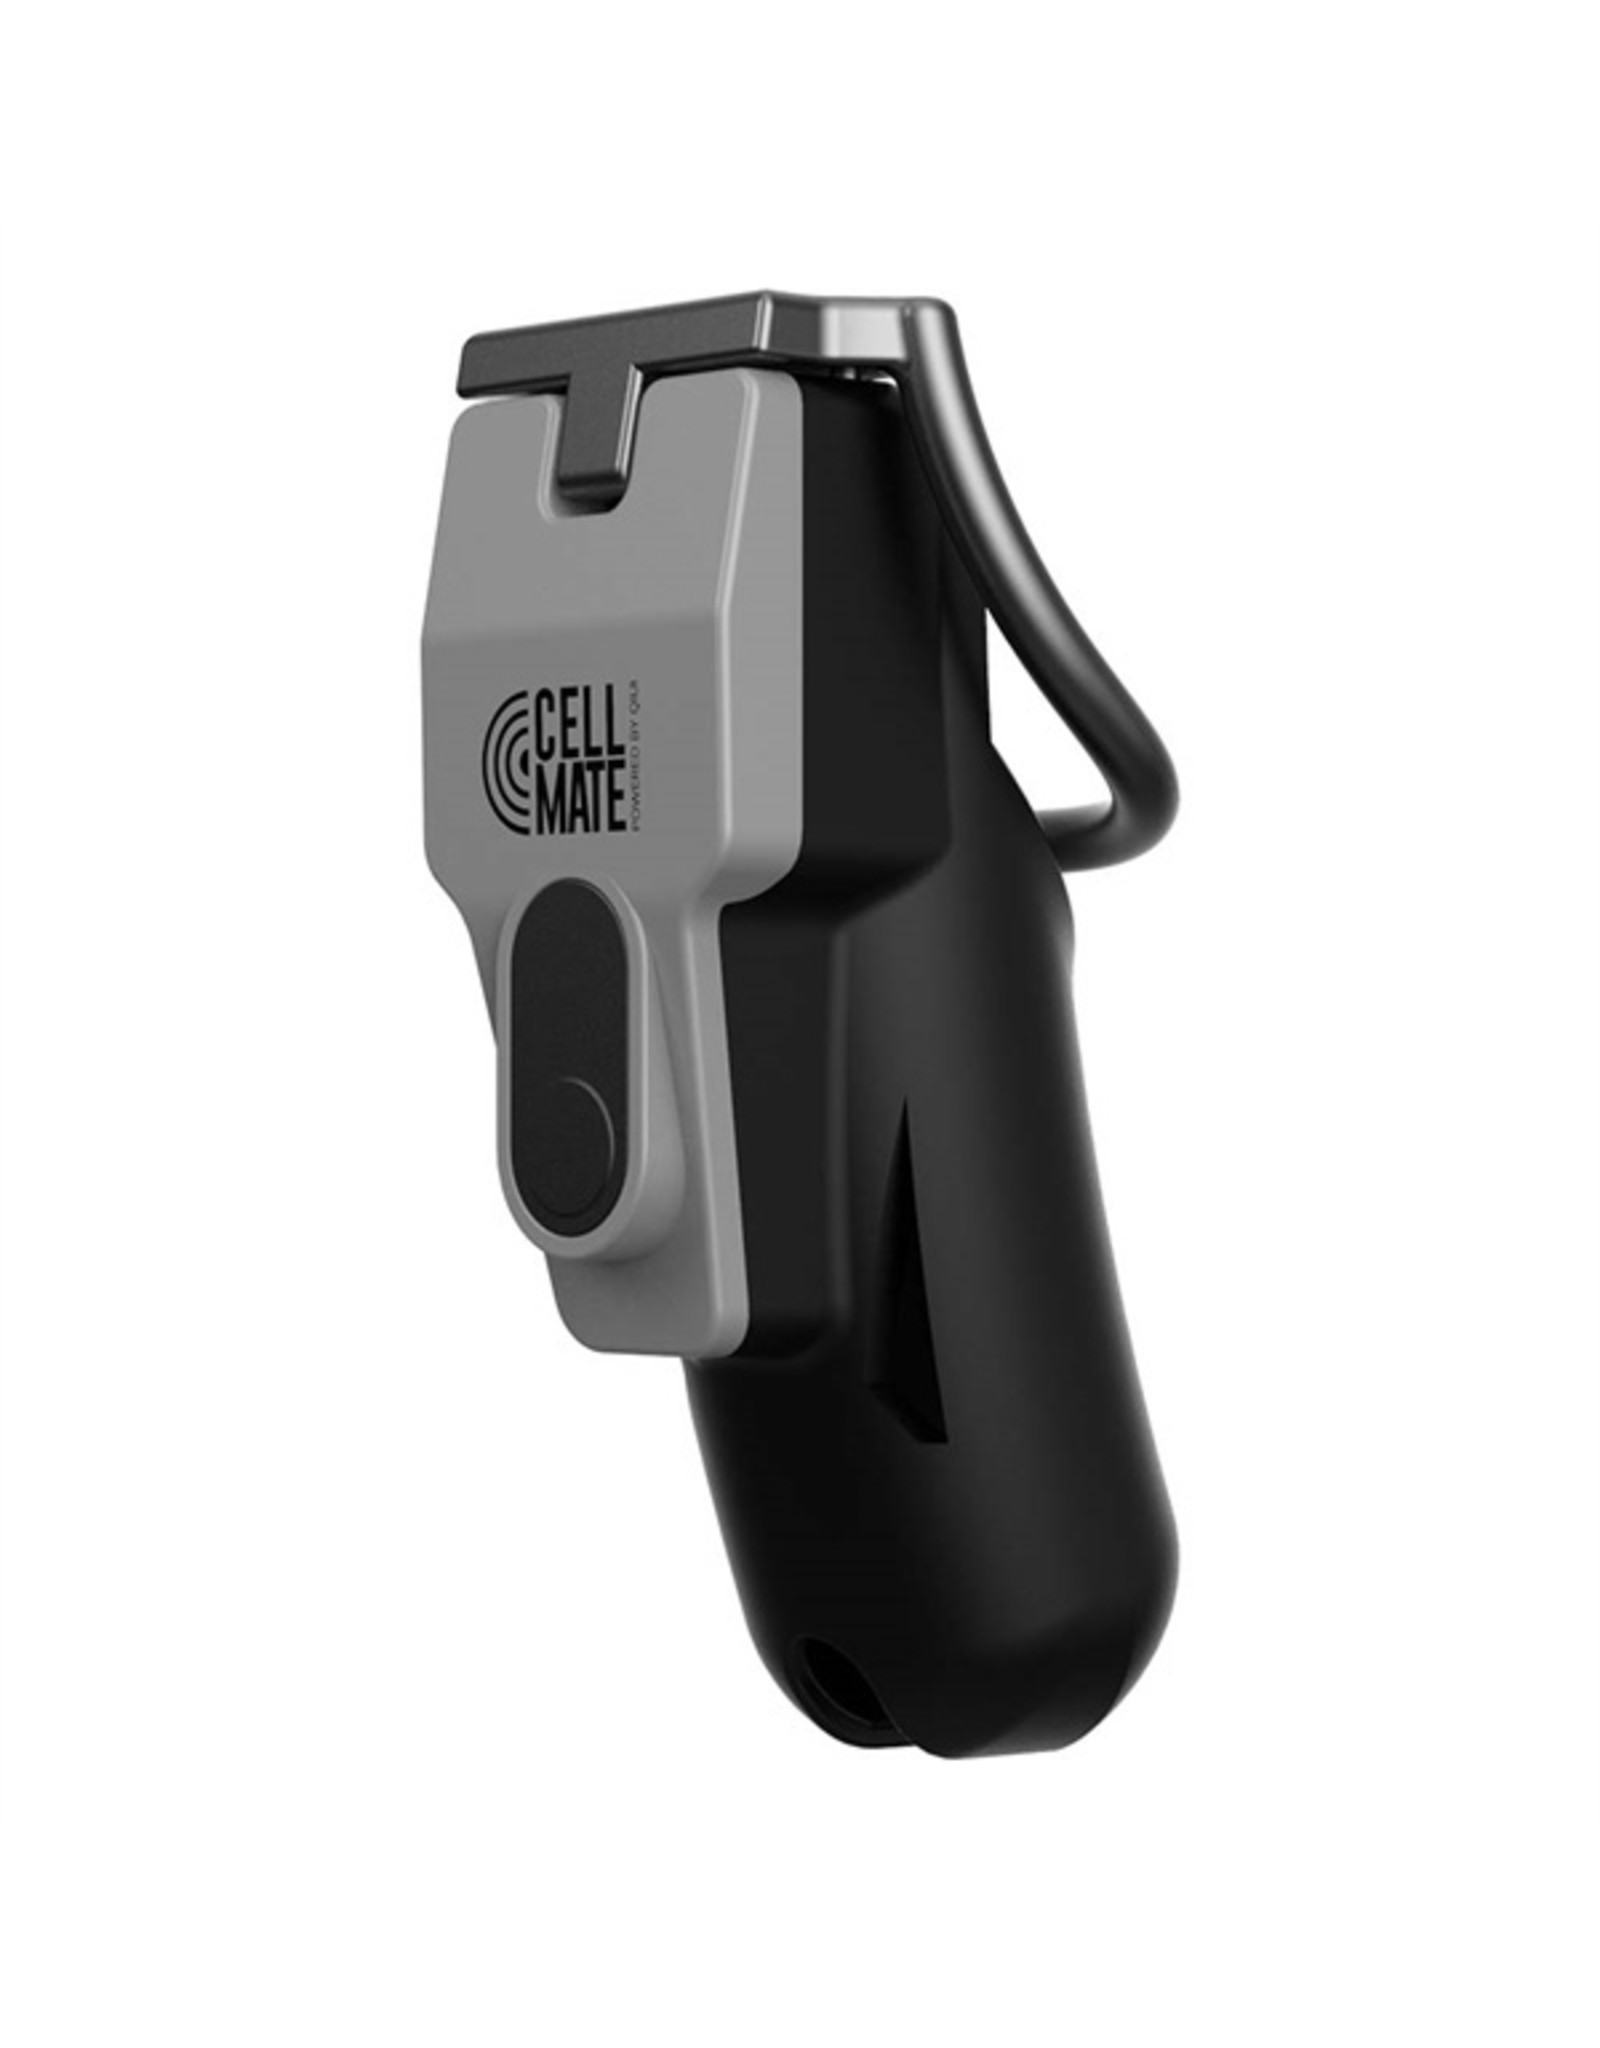 CELLMATE - App Controlled Chastity Device - Long